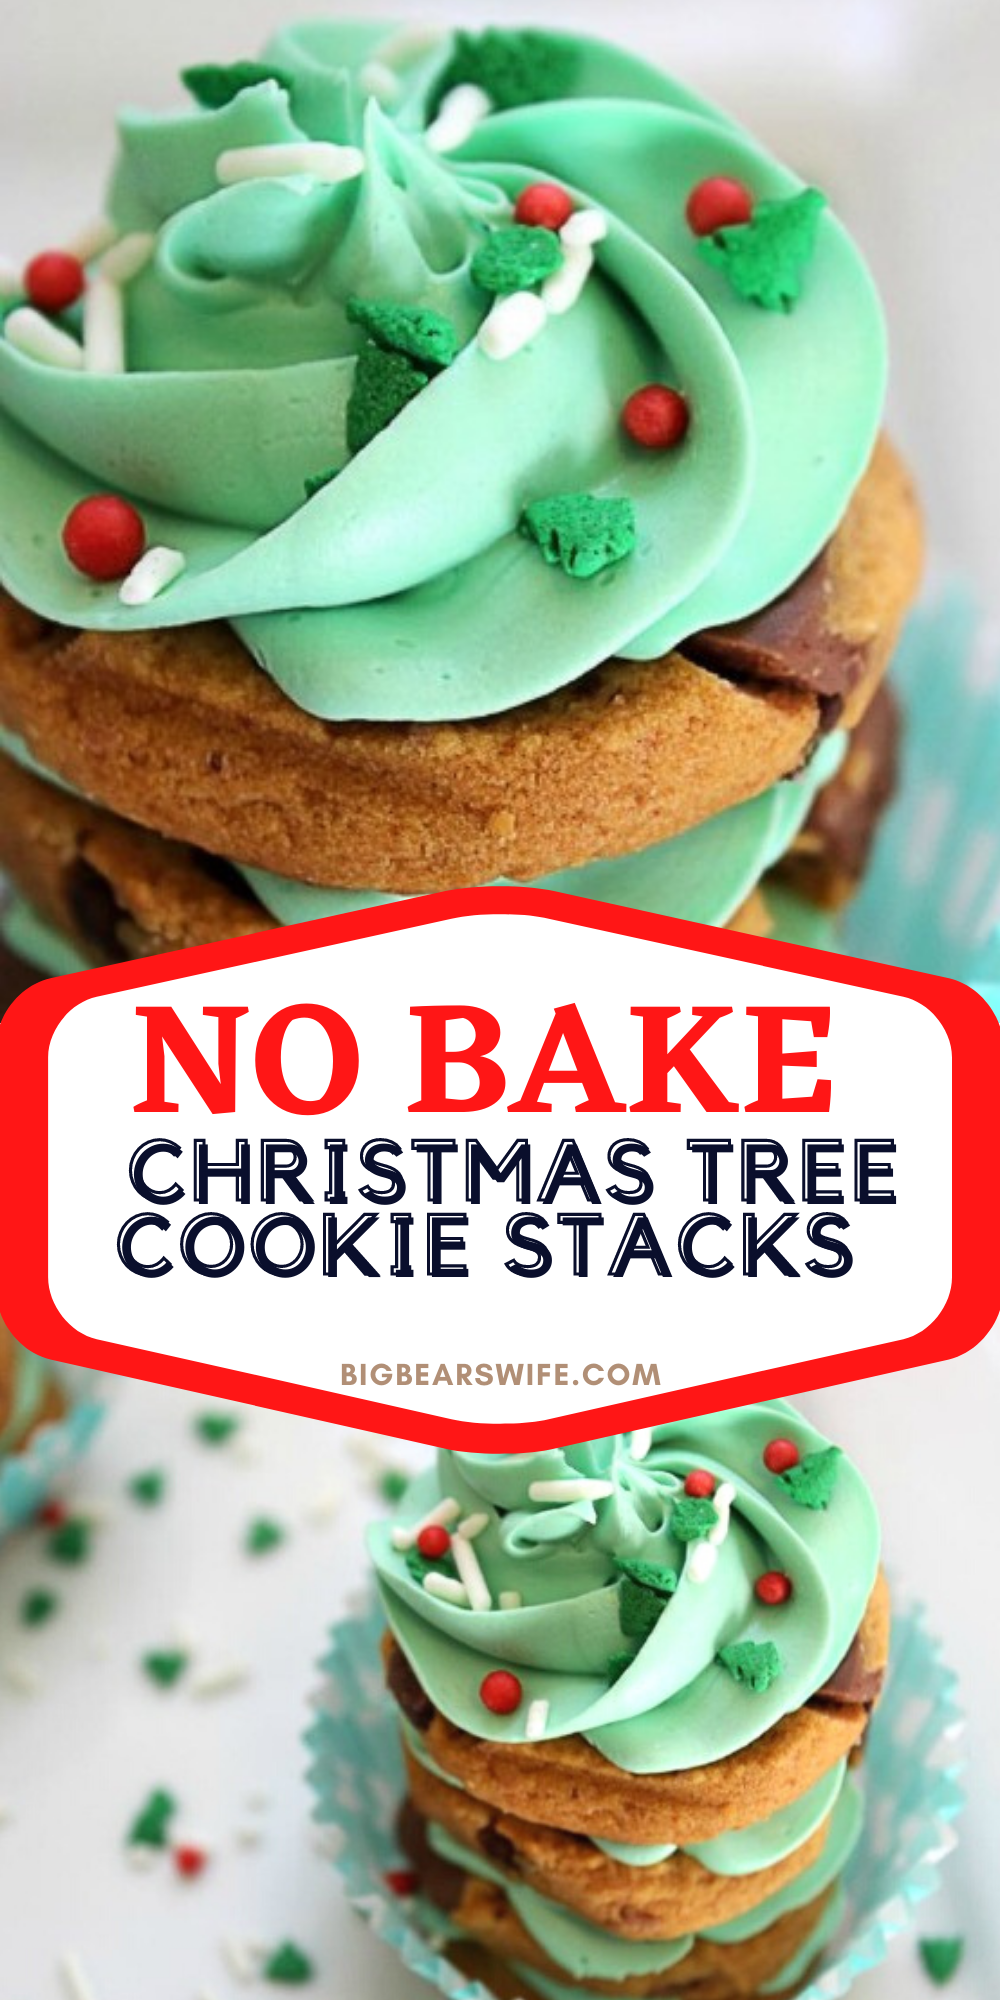 If you need a quick but cute no bake Christmas dessert, these No Bake Christmas Tree Cookie Stacks are for you! They're made with stacks of store-bought cookies and frosting to create the cutest little Christmas treats. via @bigbearswife